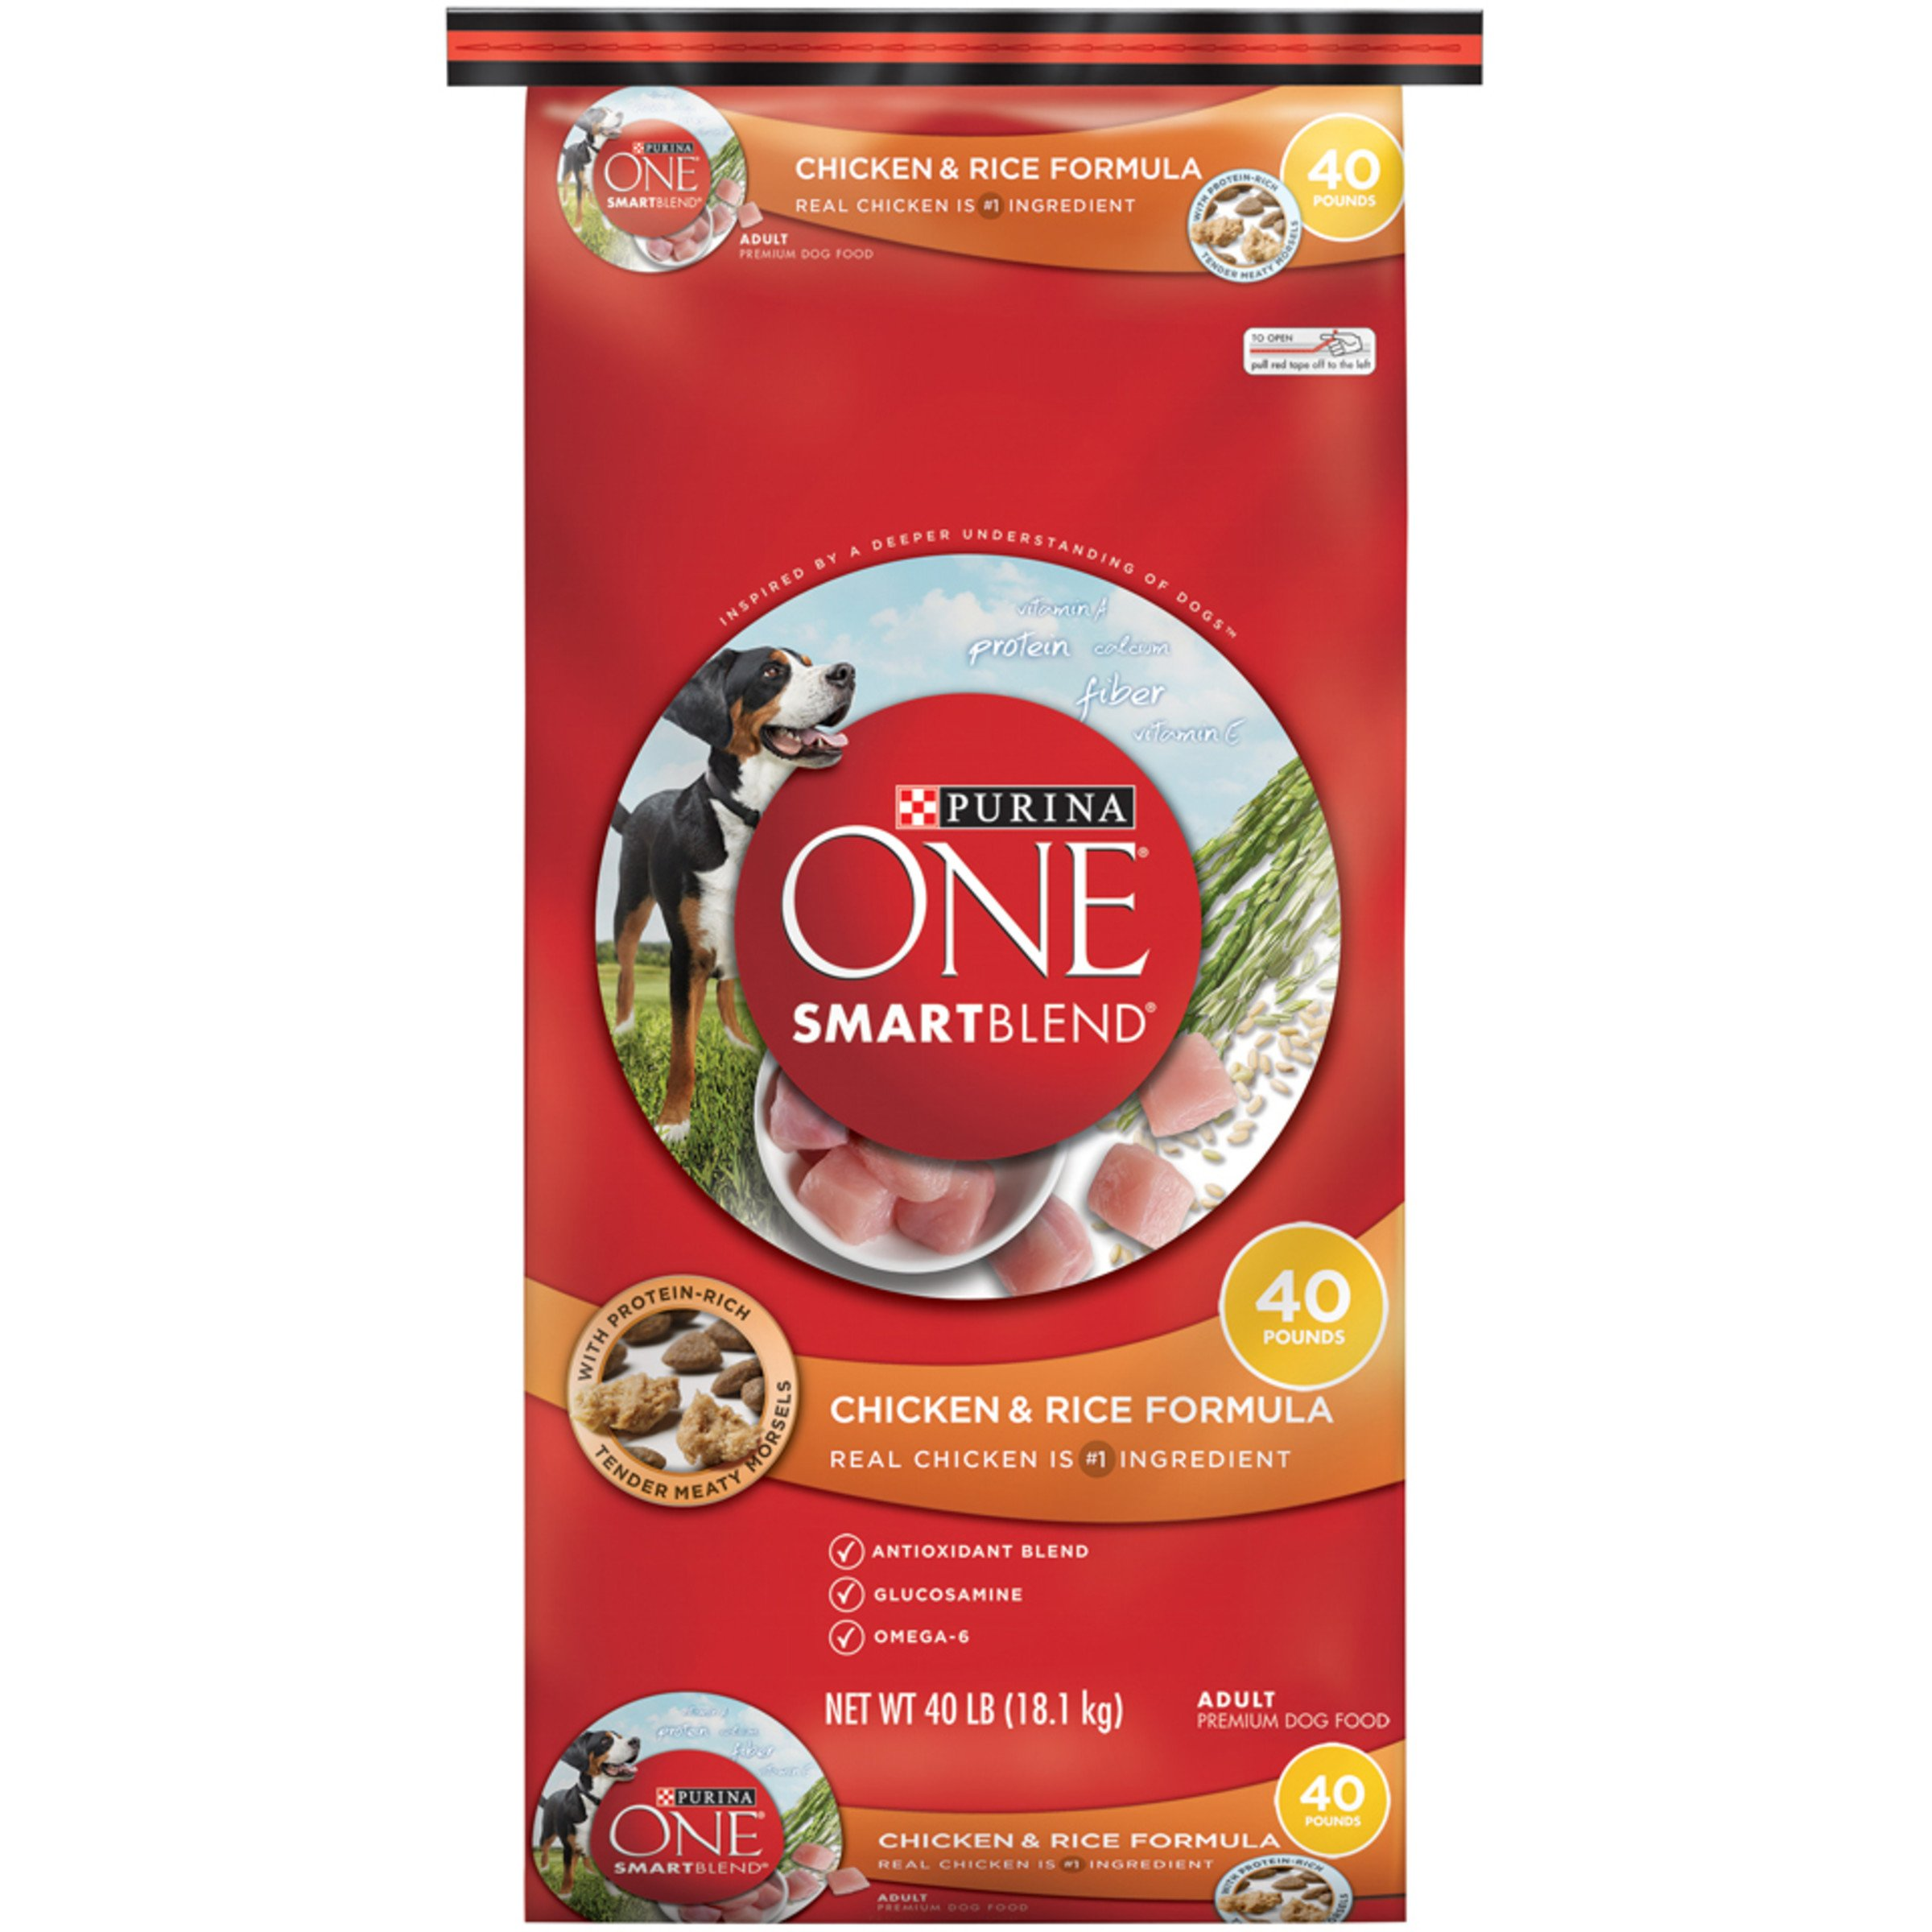 Purina ONE SmartBlend Chicken & Rice Formula Dry Dog Food 40 lb